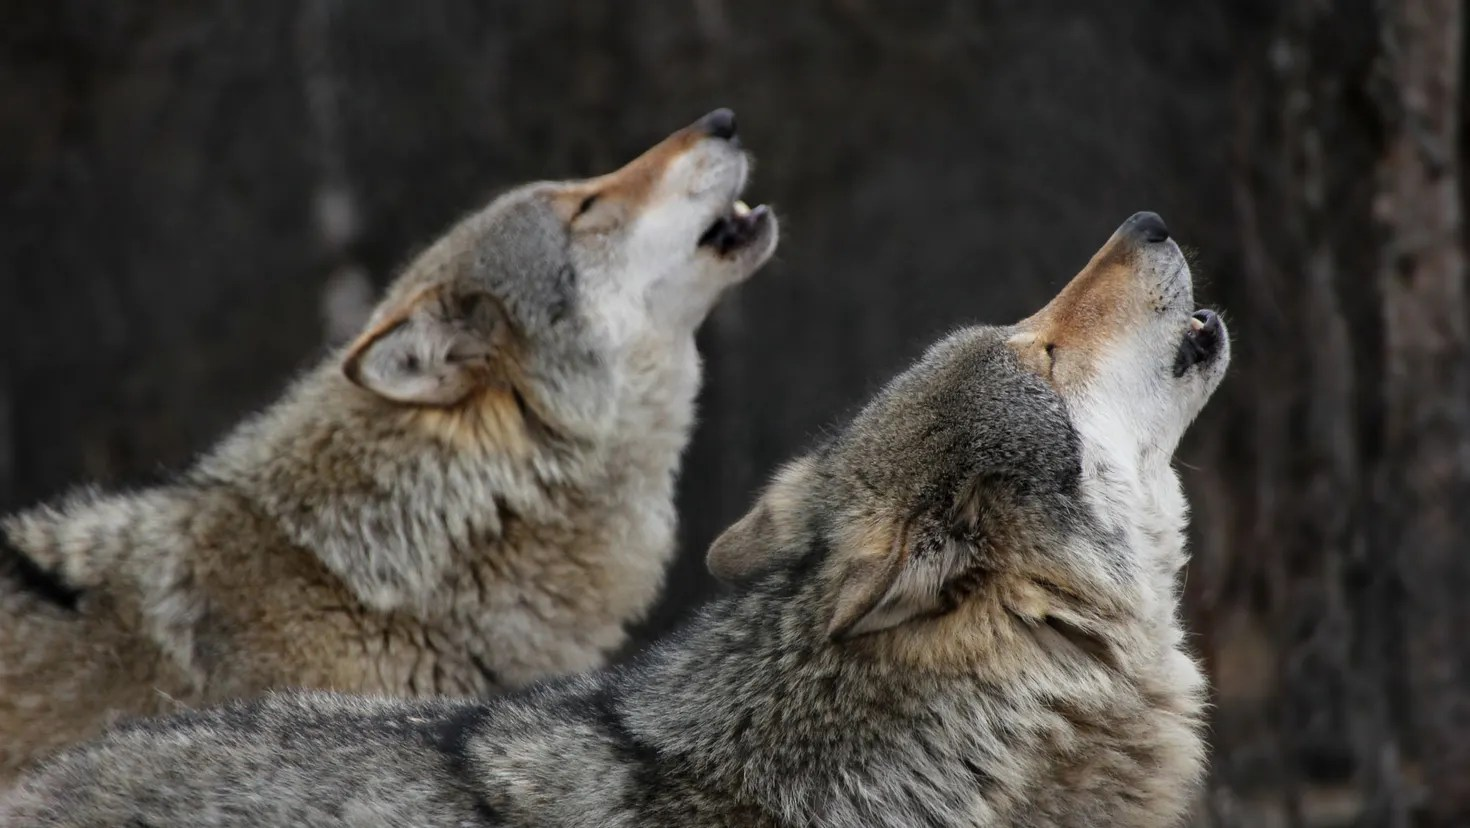 POLL: Should wolves be classified as predators to allow year-round hunting?